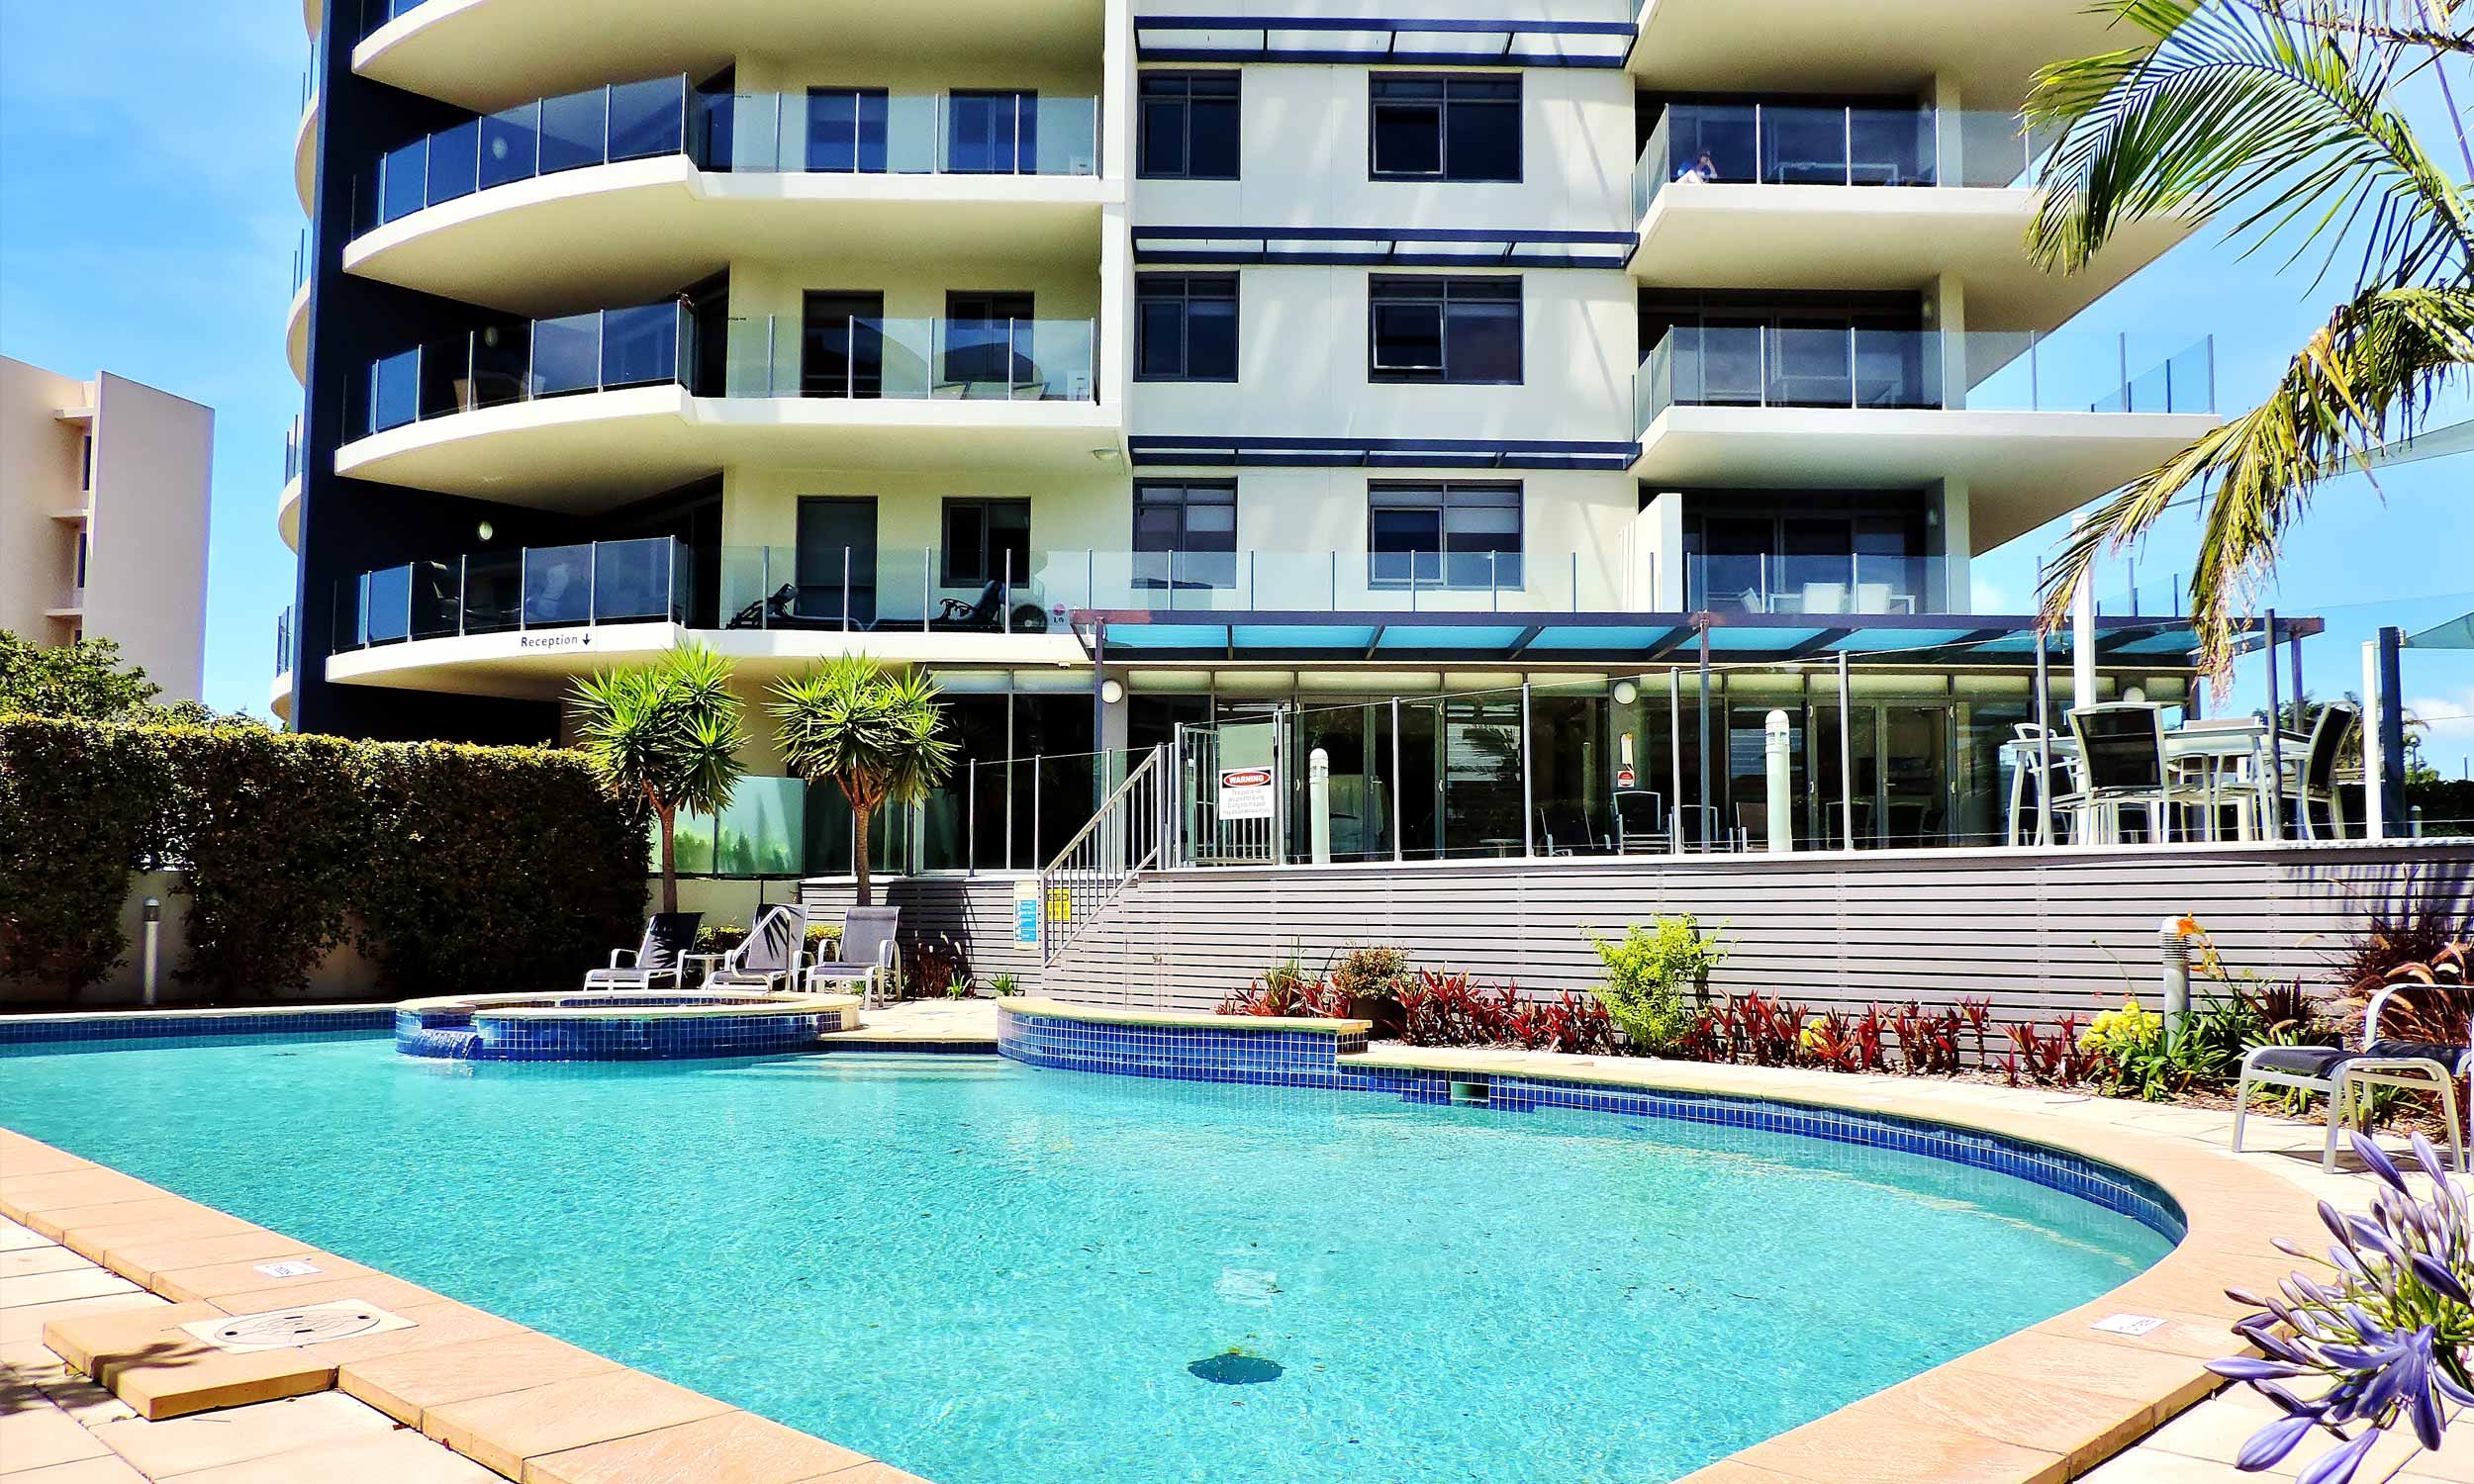 Sevan Apartments | Luxury Holiday Accomodation in Forster NSW